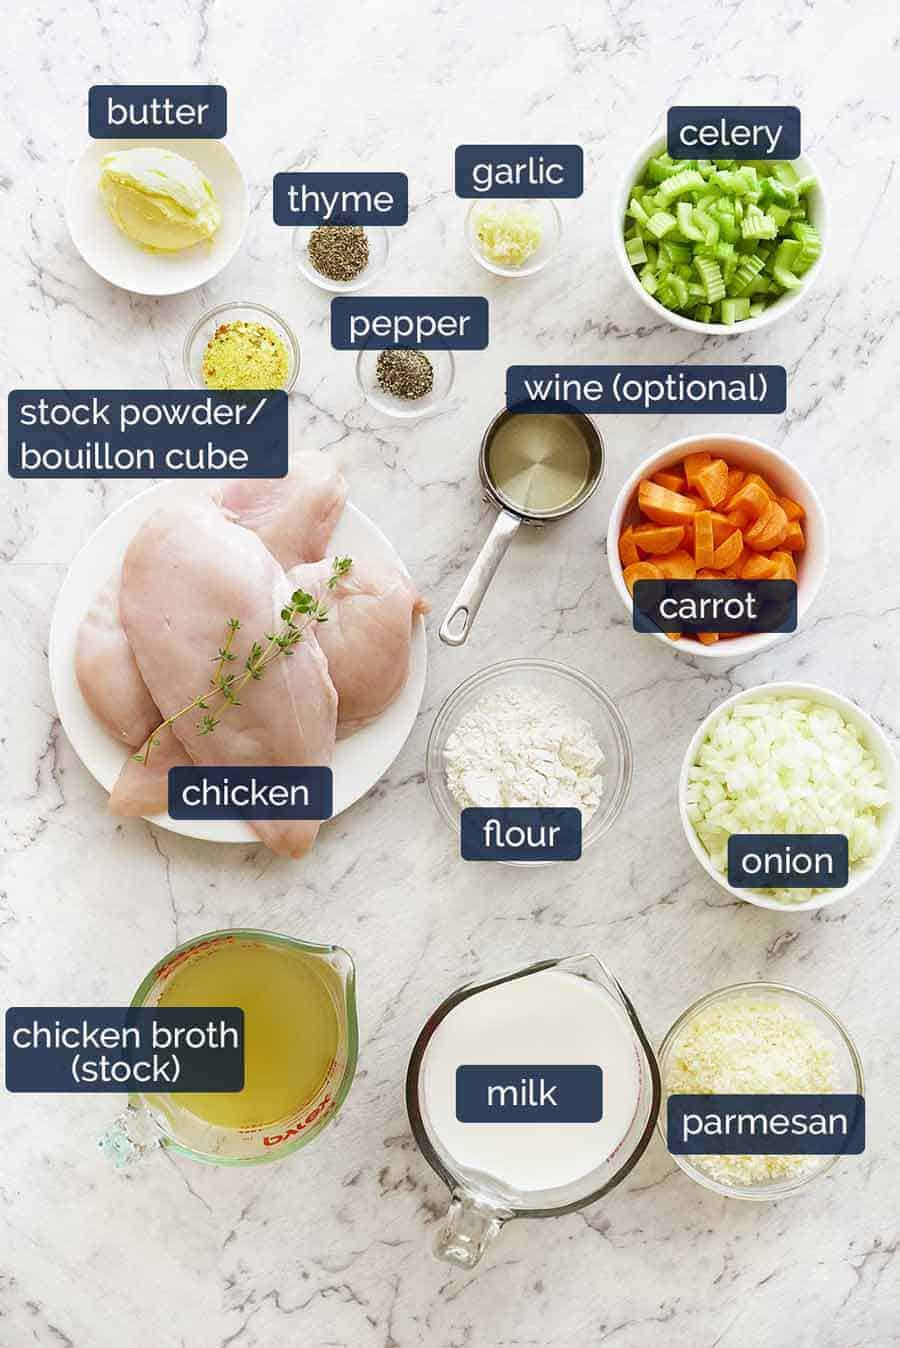 Chicken Pot Pie ingredients, made using uncooked chicken